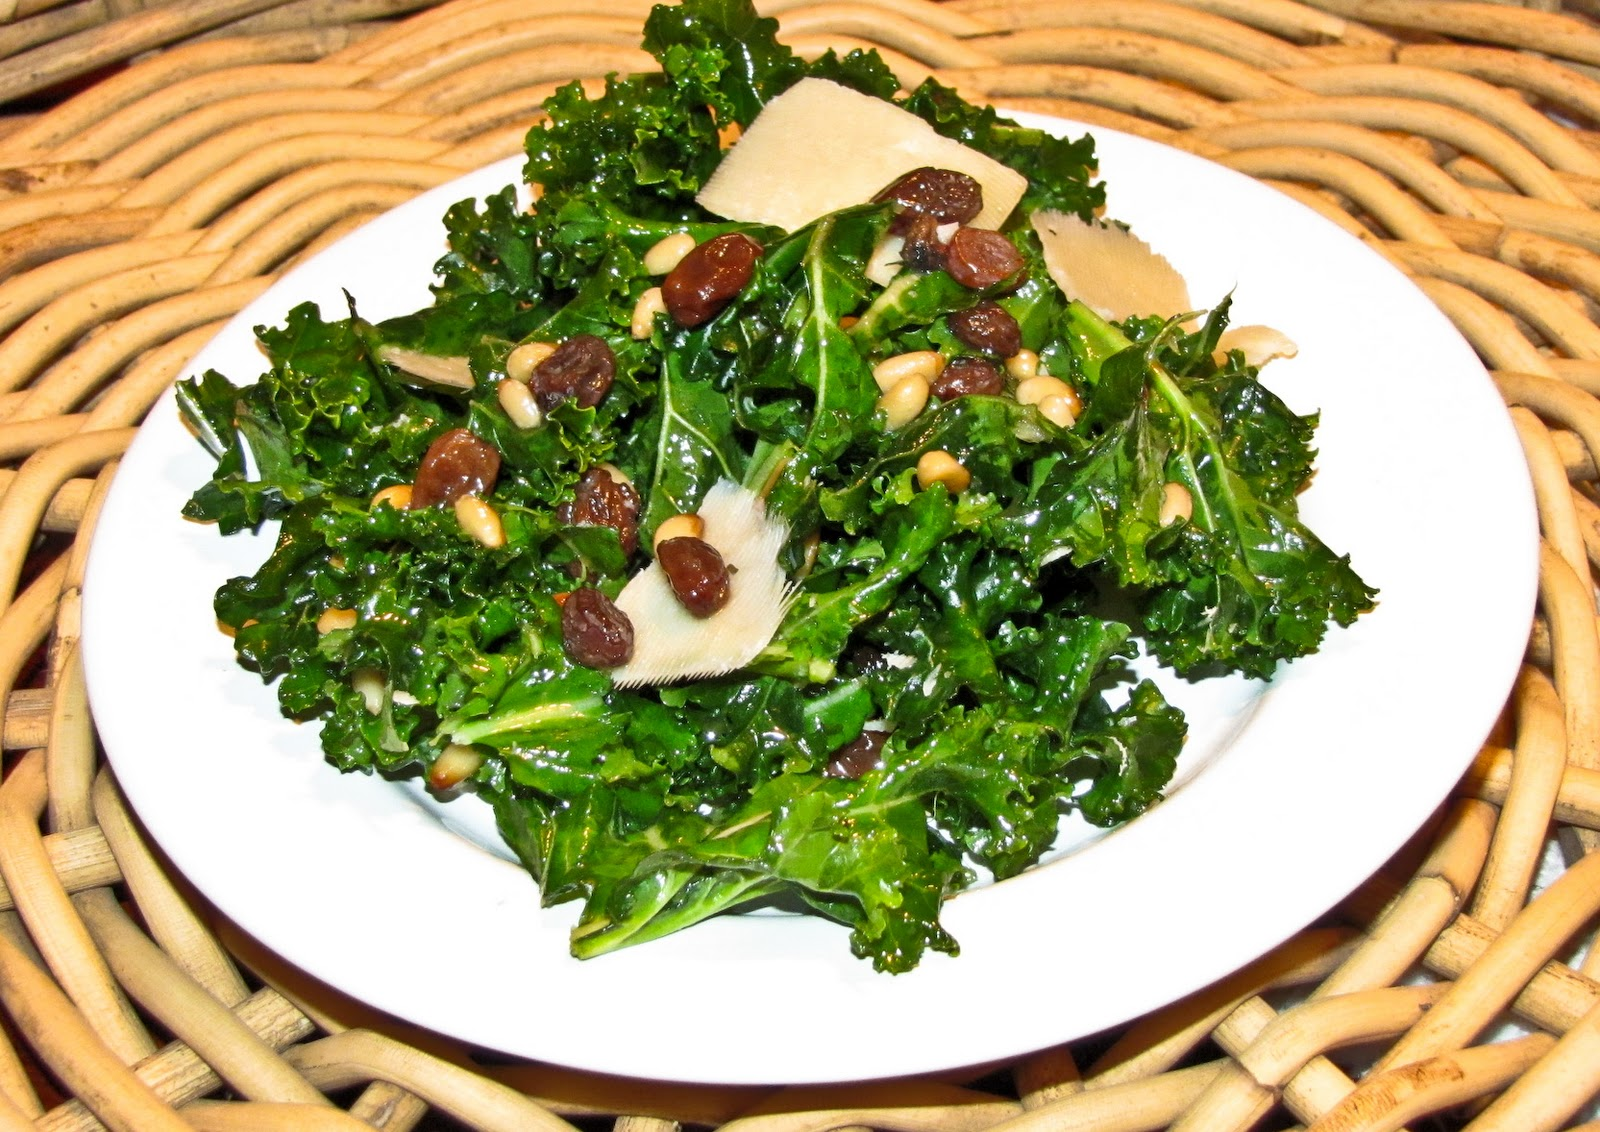 OnTheMove-In the Galley: Kale Salad with Pinenuts, Raisins ...